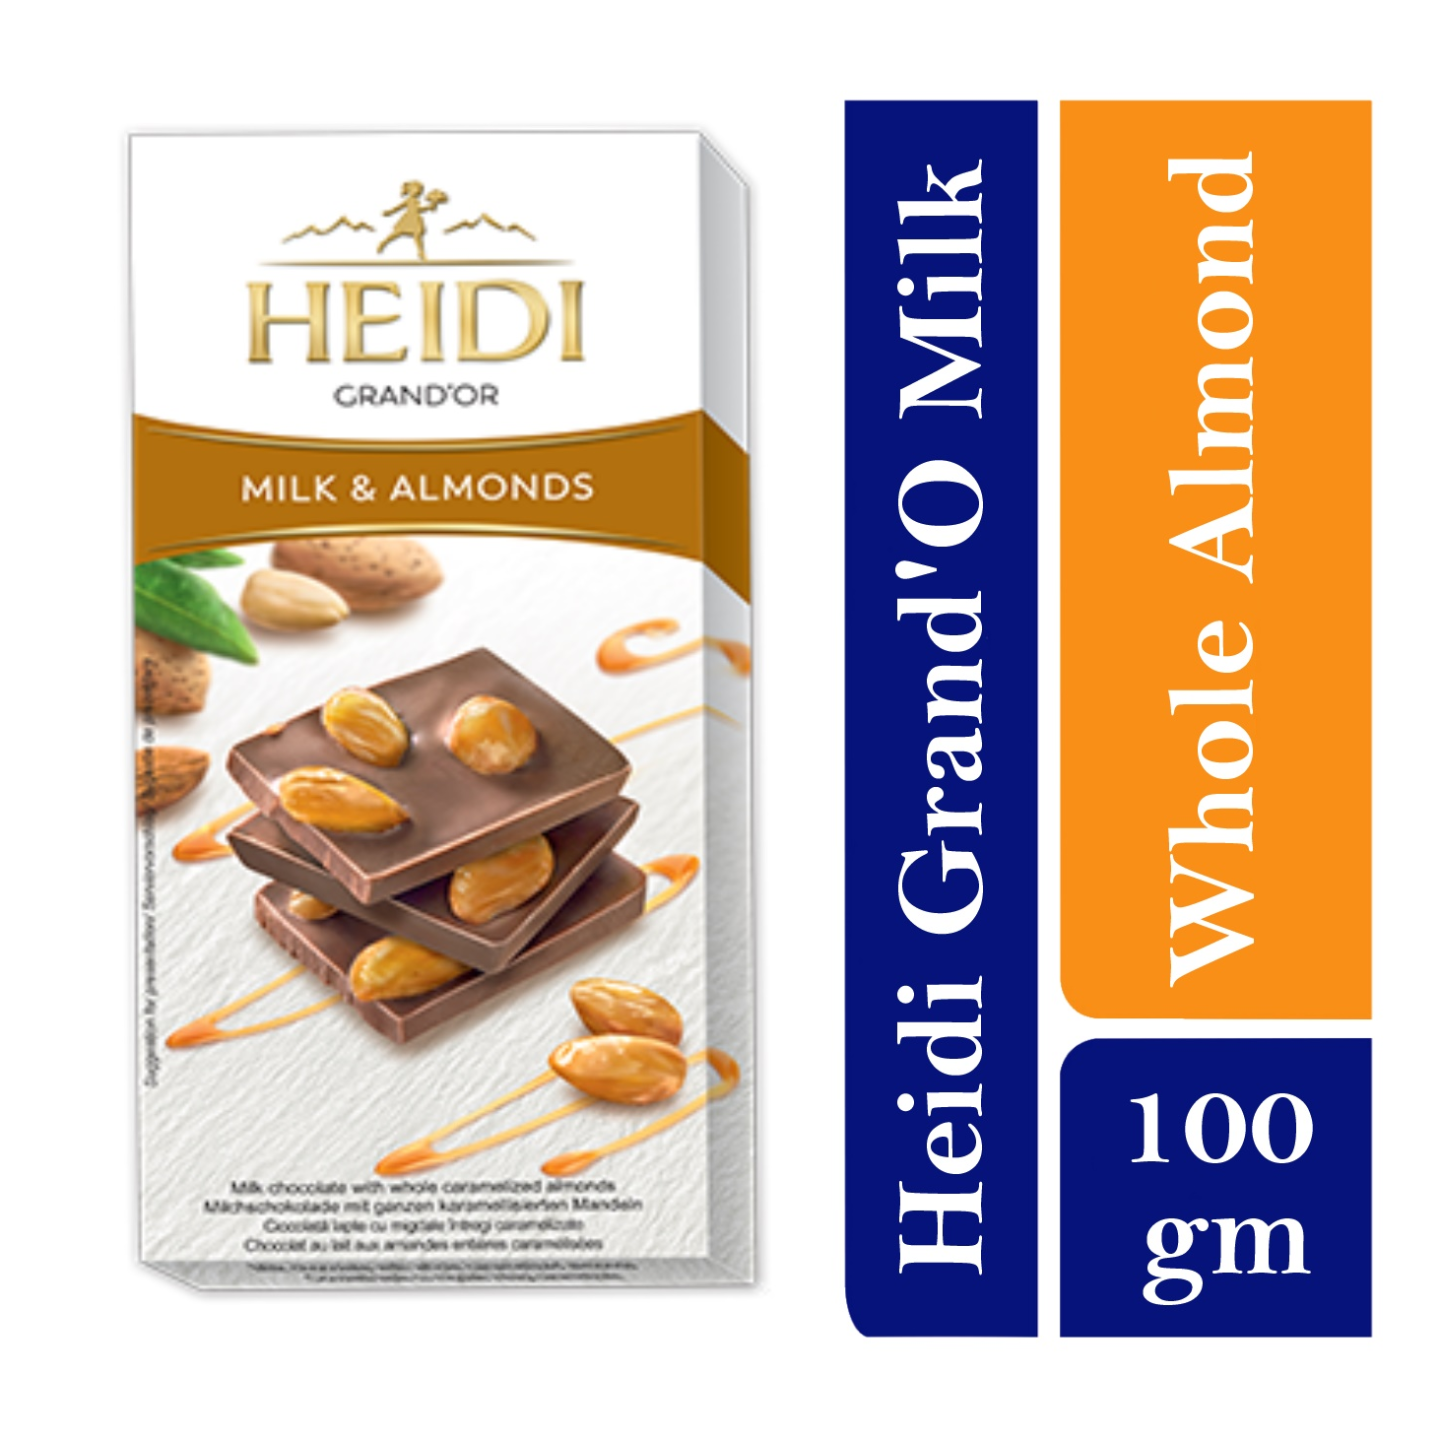 Heidi GrandOr Milk Chocolate bar with whole caramelized Almonds